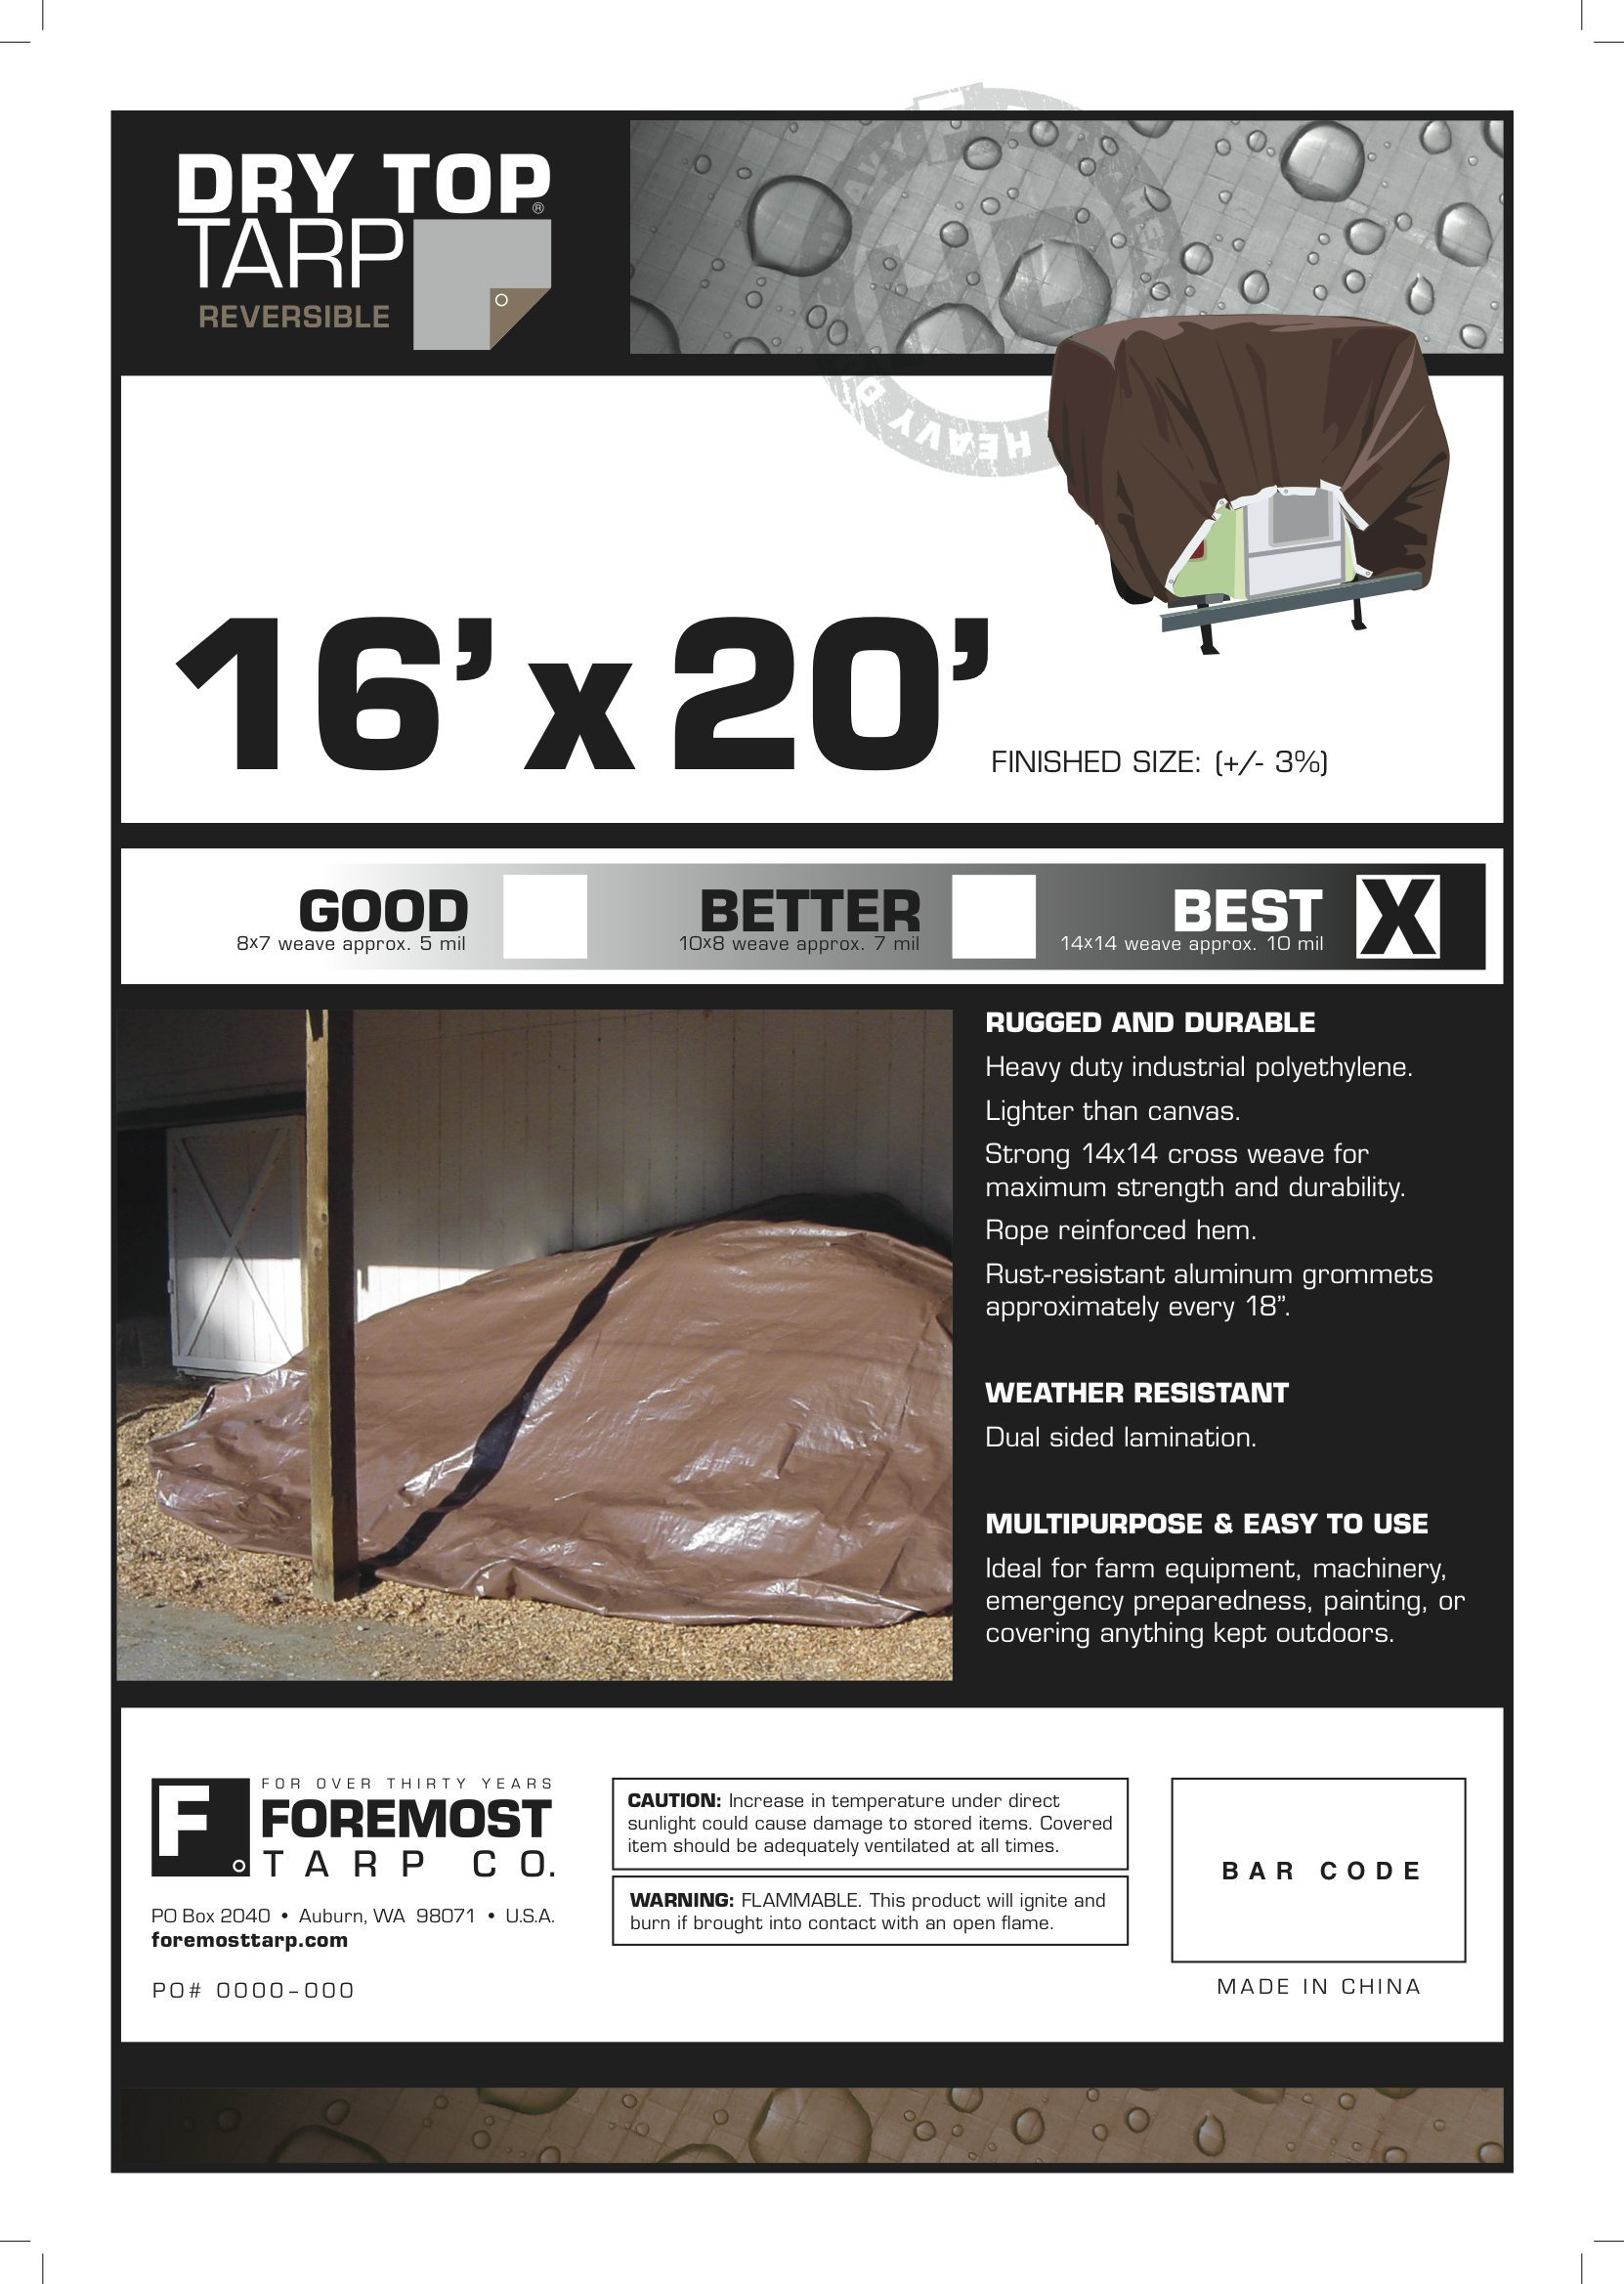 16' x 20' Dry Top Heavy Duty Silver/Brown Reversible Full Size 10-mil Poly Tarp item #216202